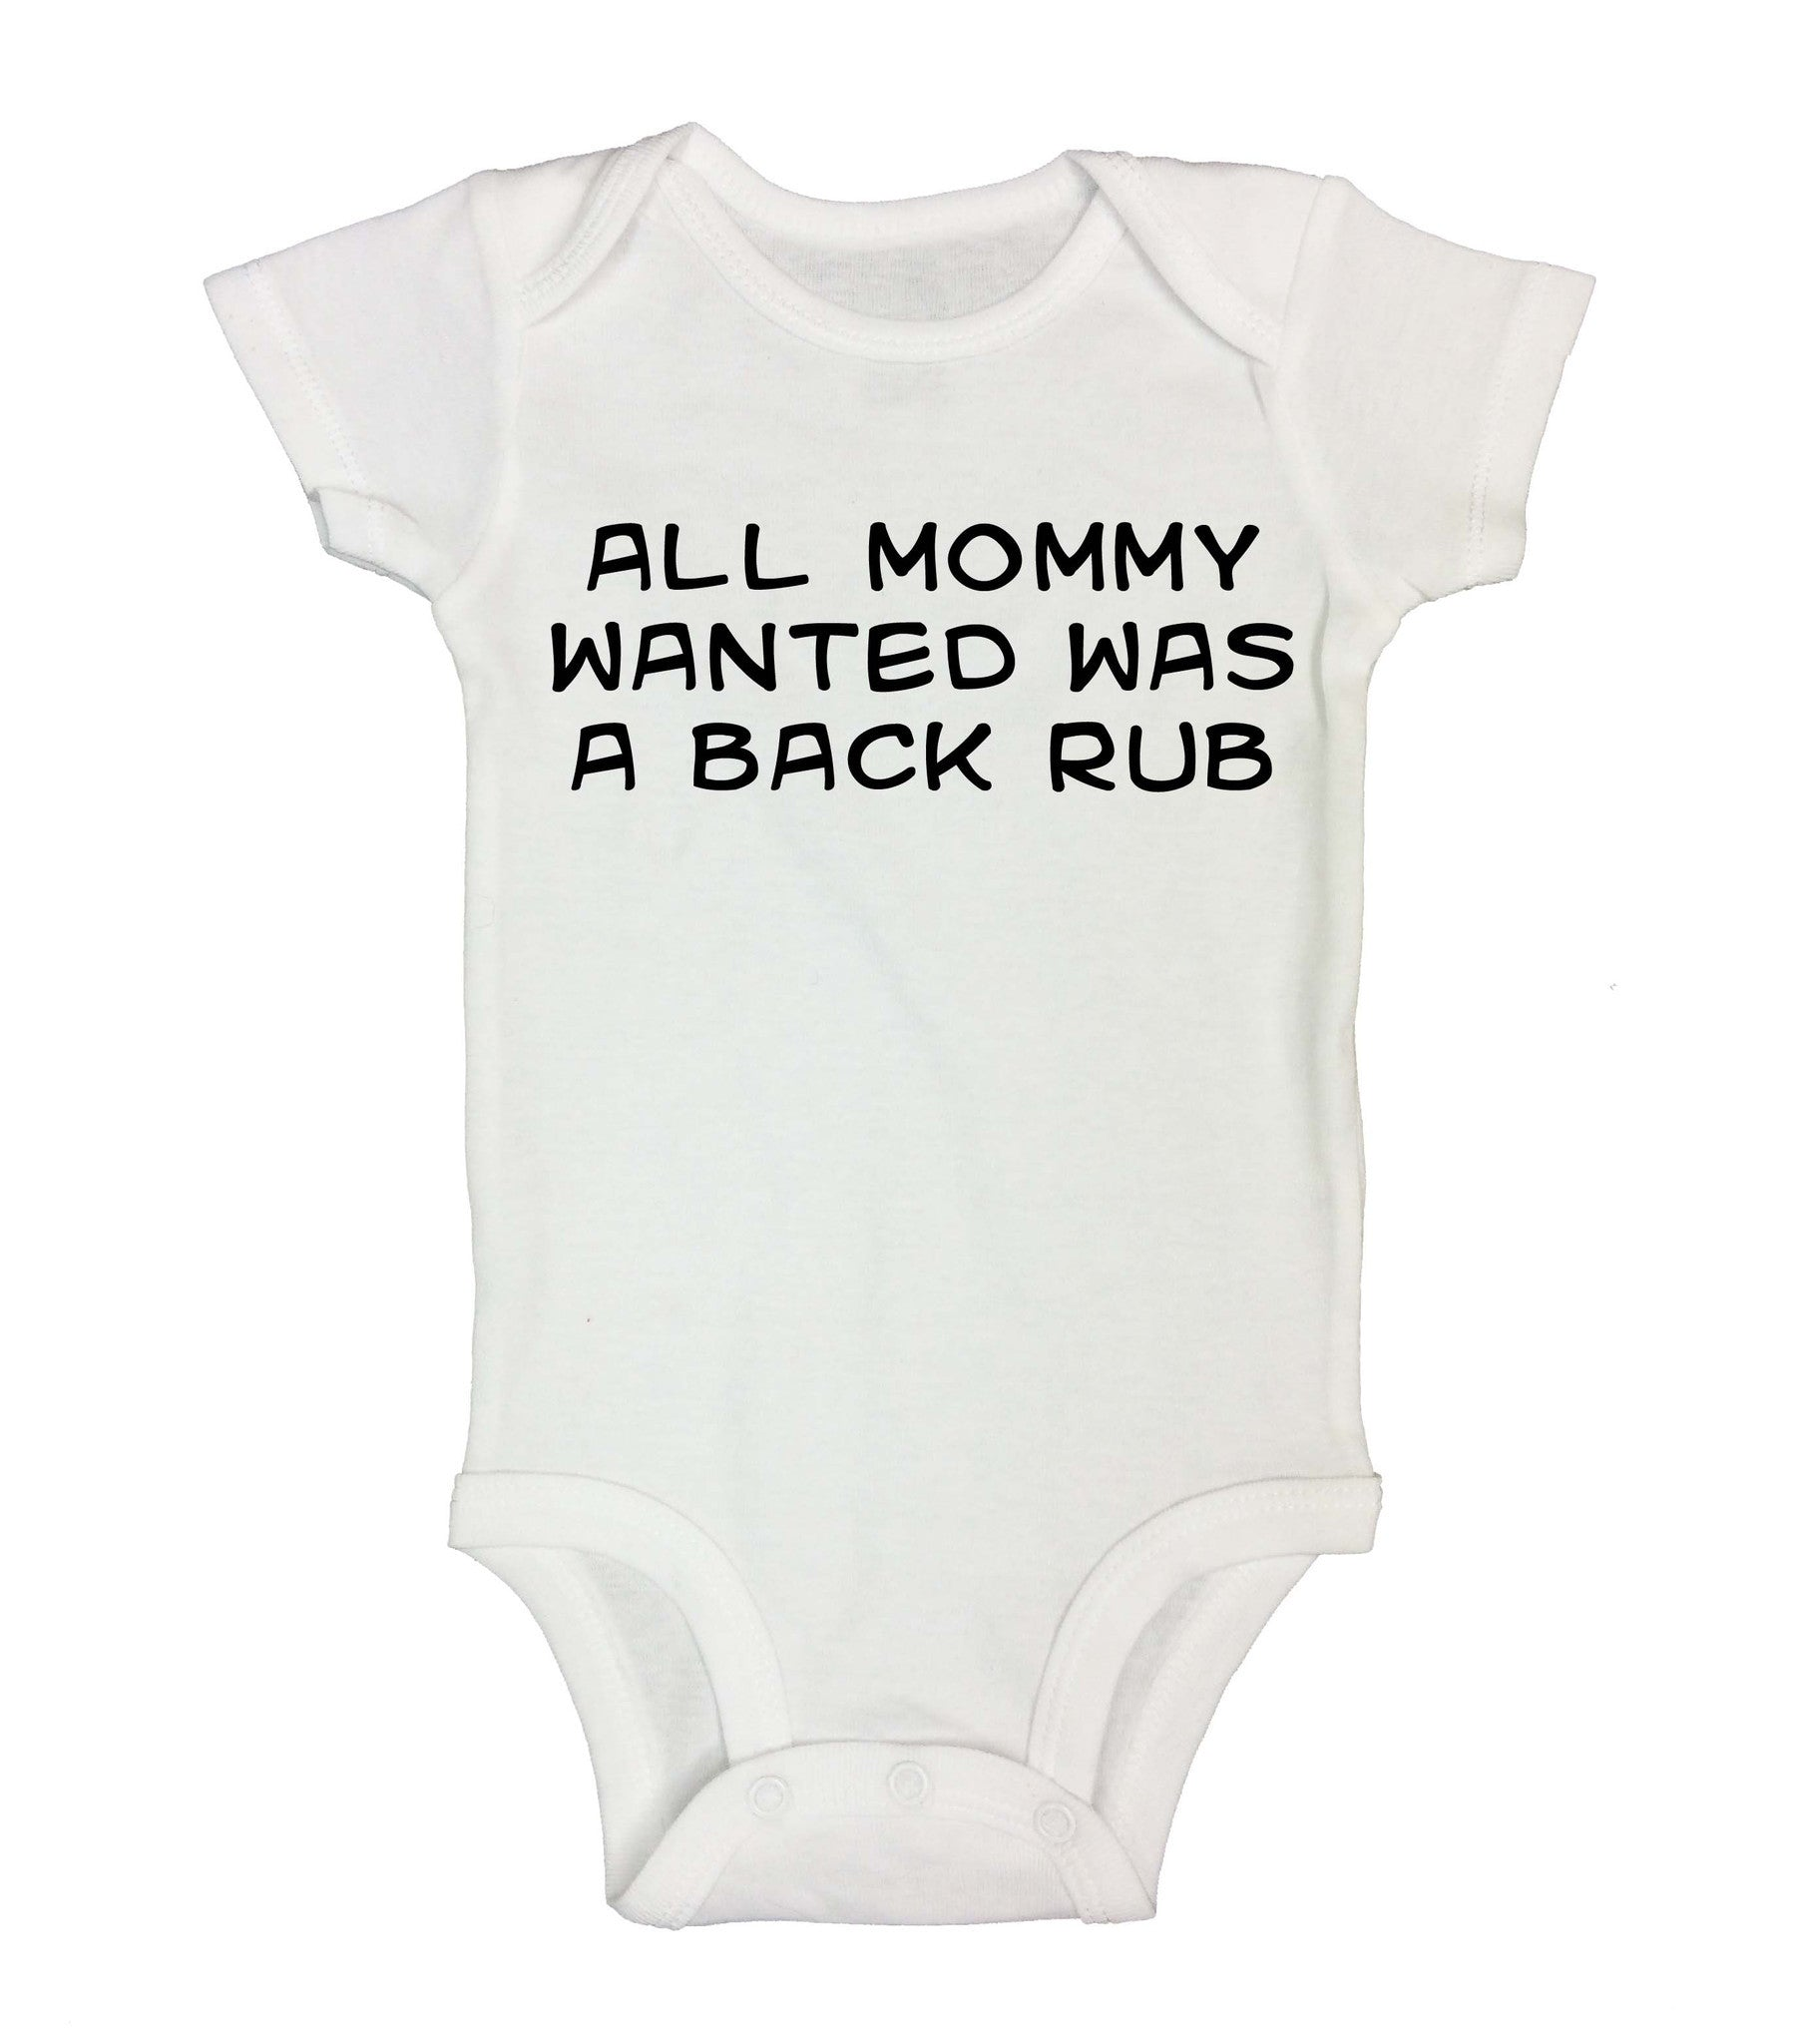 All Mommy Wanted Was A Back Rub Funny Kids Onesie - 176 - Funny Shirts Tank Tops Burnouts and Triblends  - 2